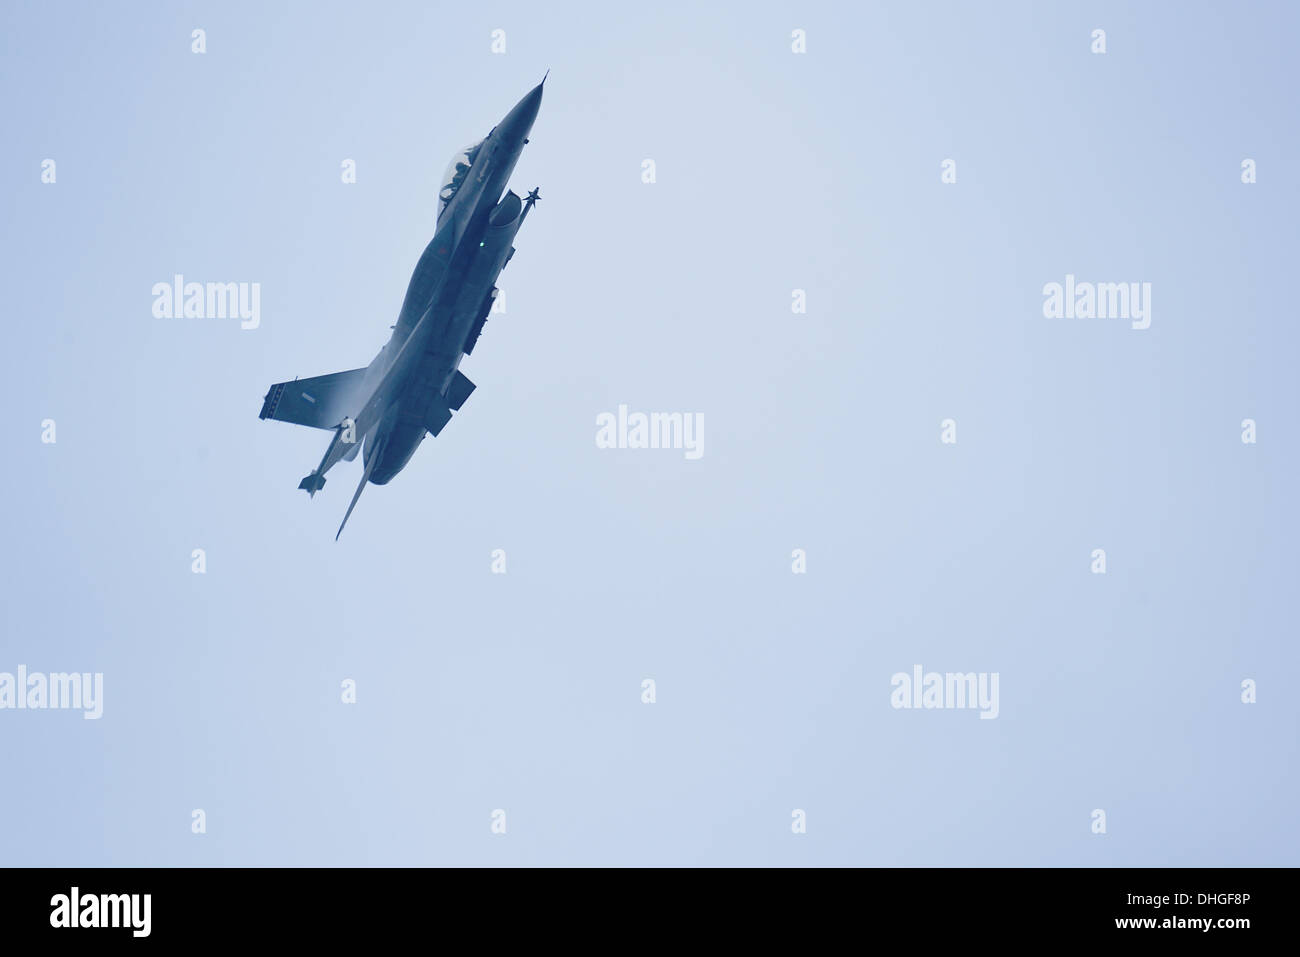 The F-16C during a high G maneuver during the airshow over Thessaloniki - Stock Image